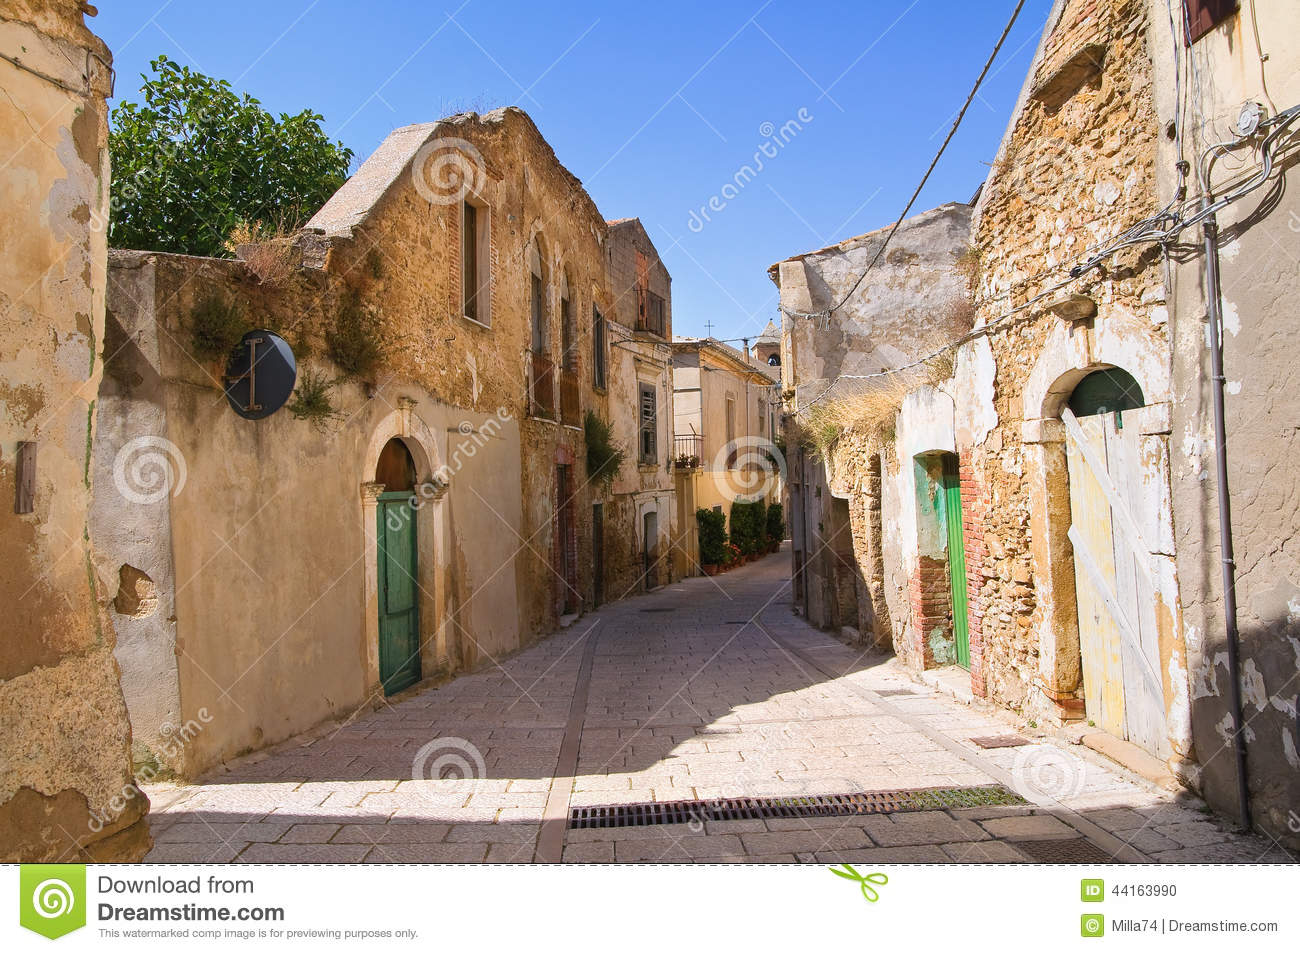 genzano di lucania singles Current local time in genzano di lucania - check correct time in genzano di lucania, basilicata, italy, summer/winter time, standard offset to gmt and time conversion dates for daylight savings time 2018.